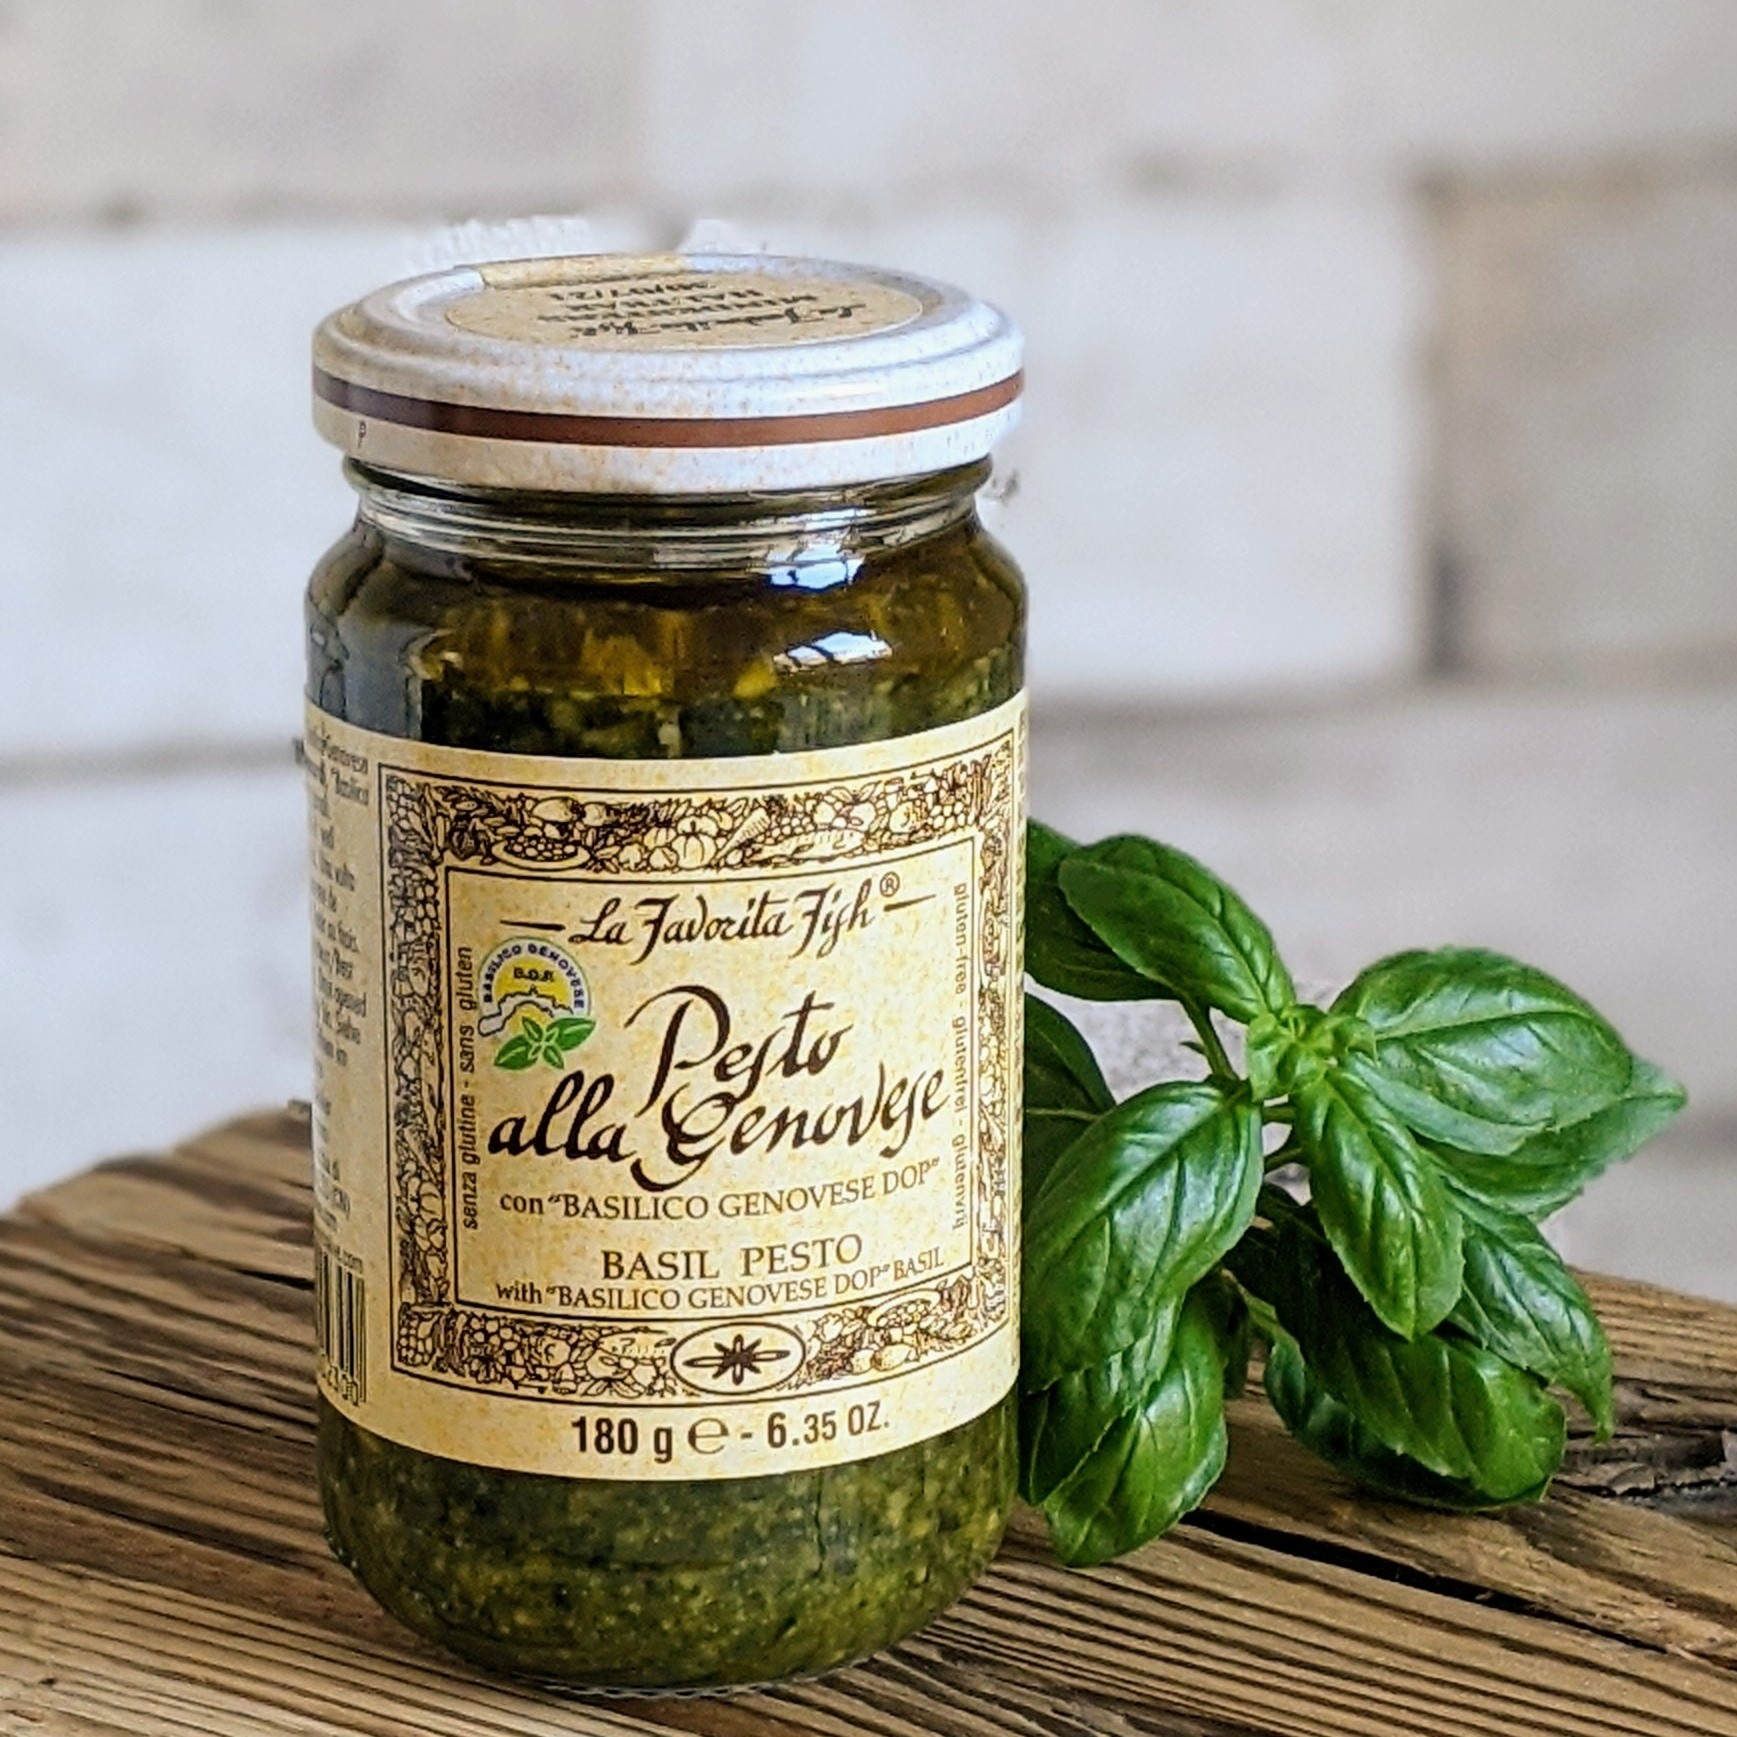 Favorita Fish Pesto Alla Genovese 180g